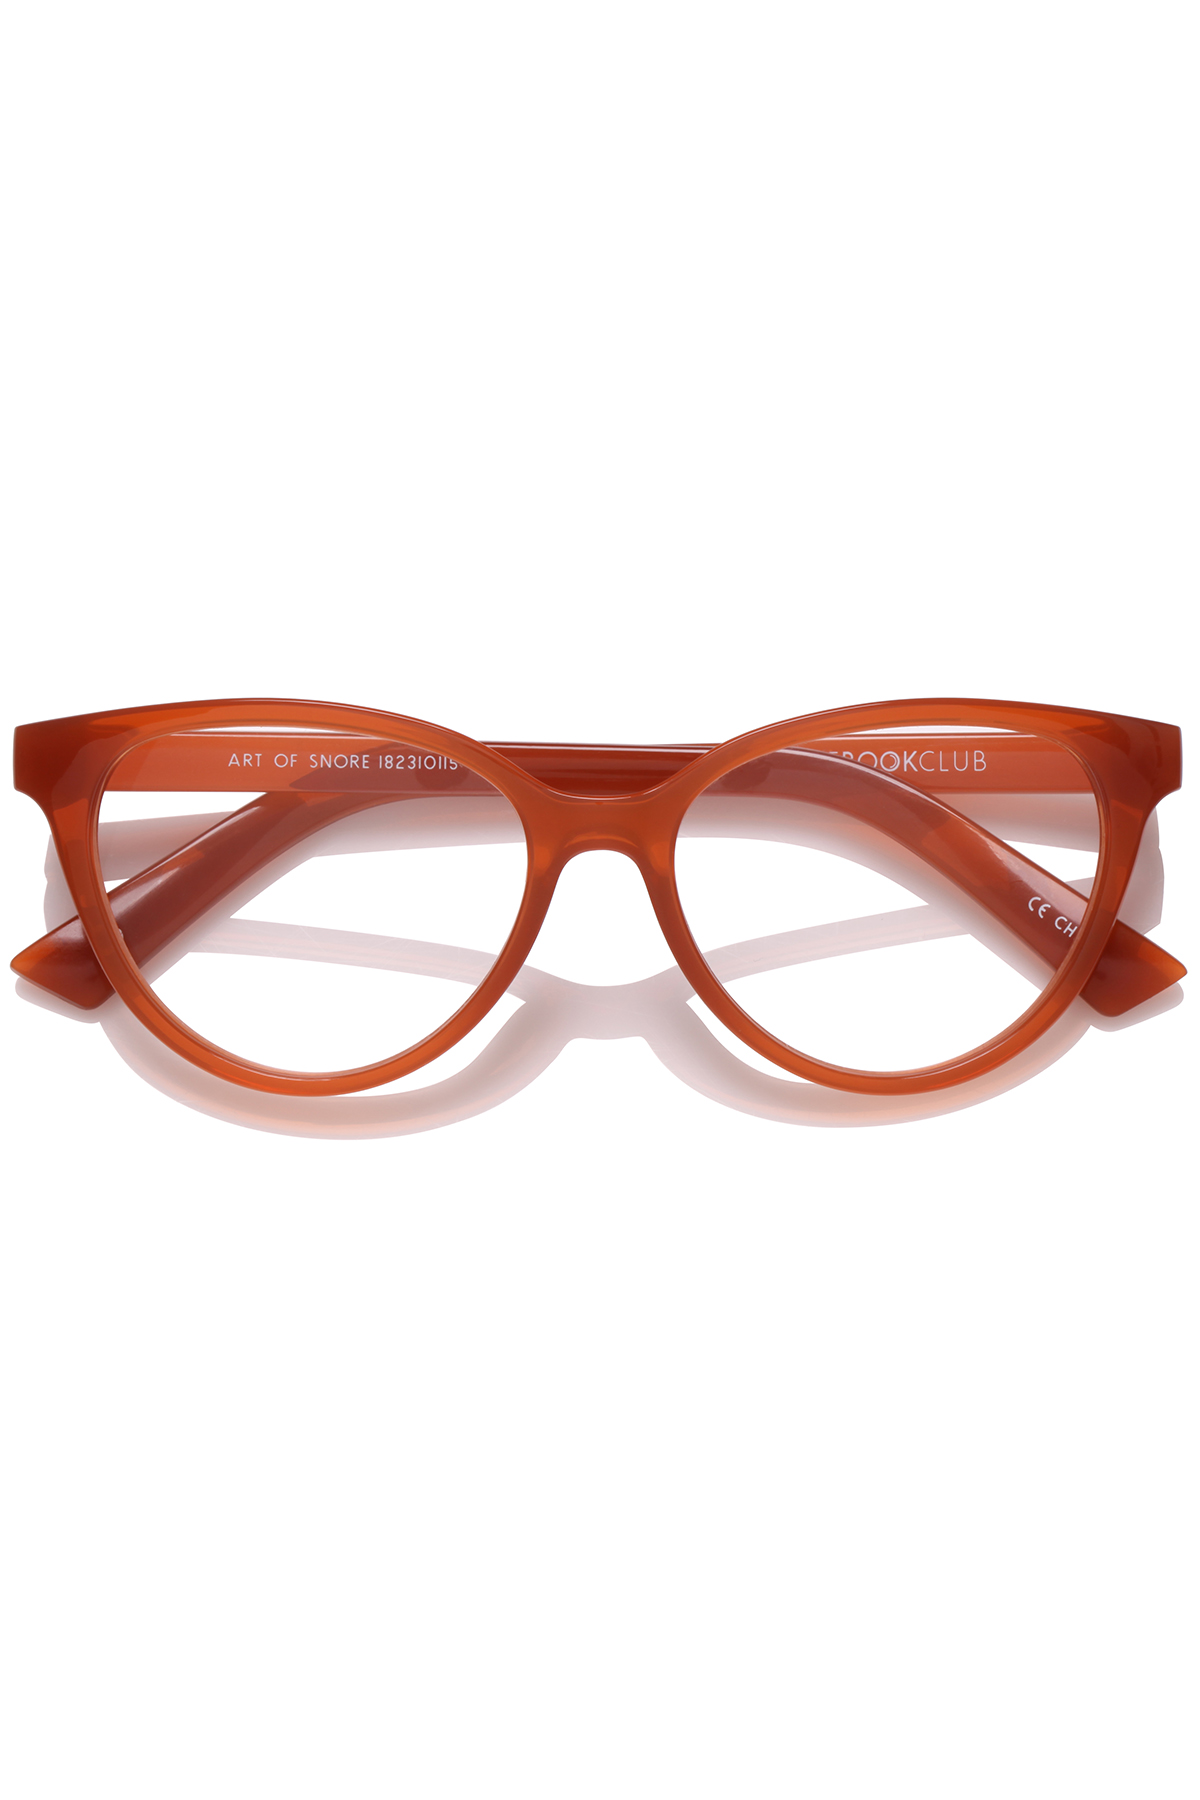 The Art of Snore Blue Light Filter Glasses (0.0 Strength) - Saffron 2